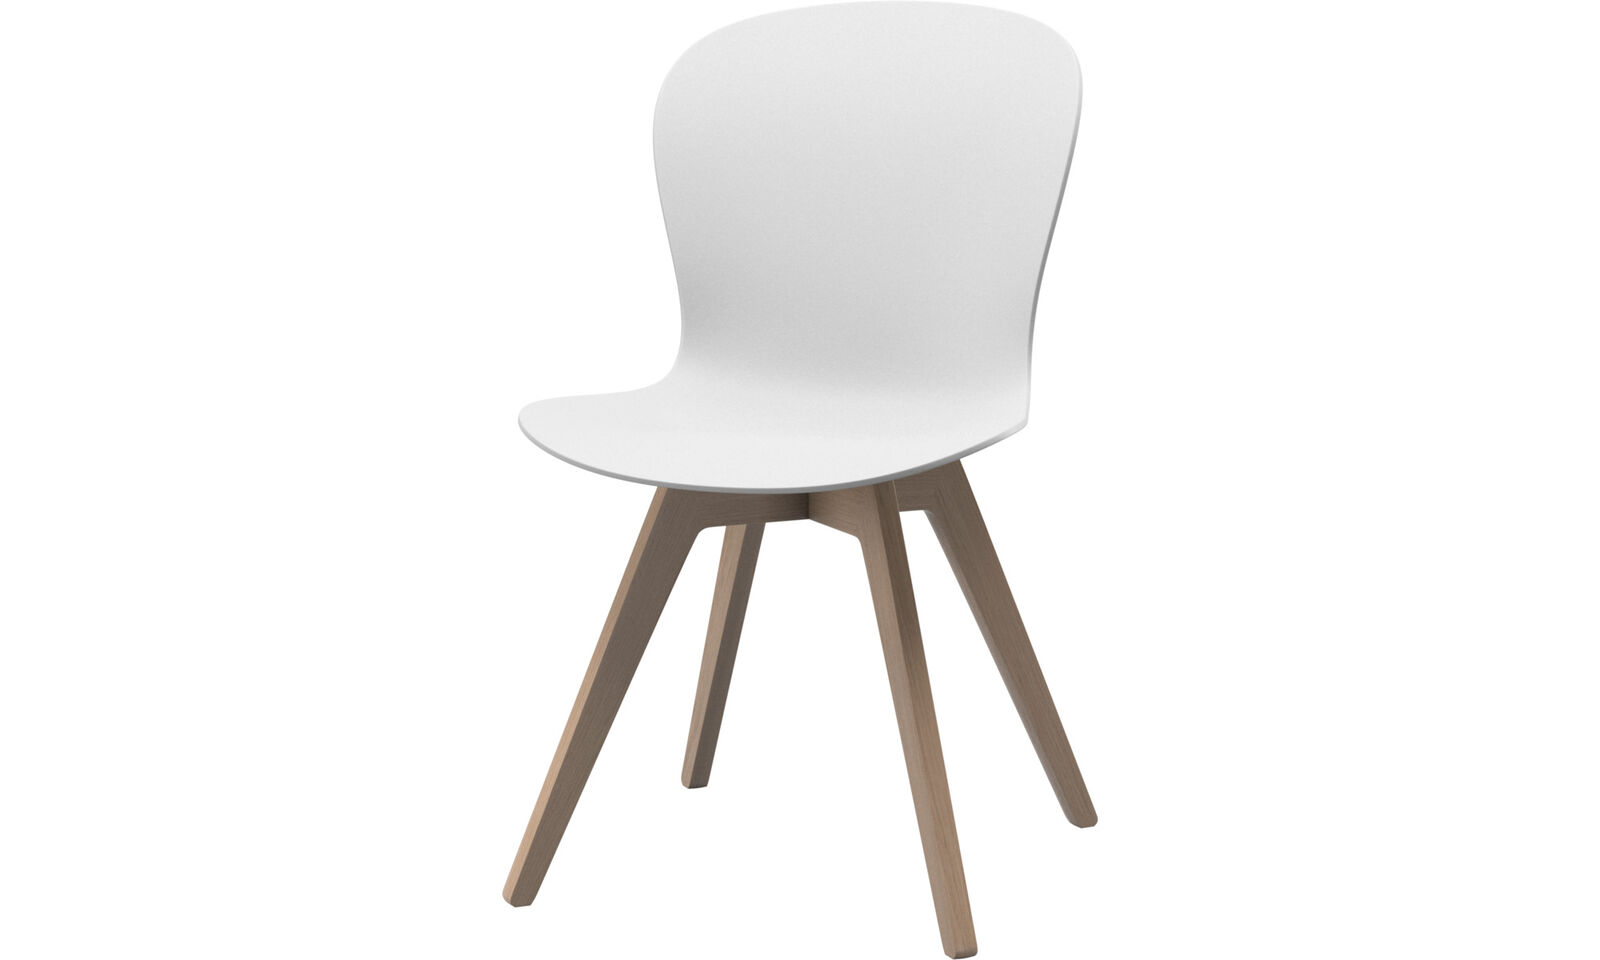 2 x Adelaide Dining Chair with Morgan Seat pads